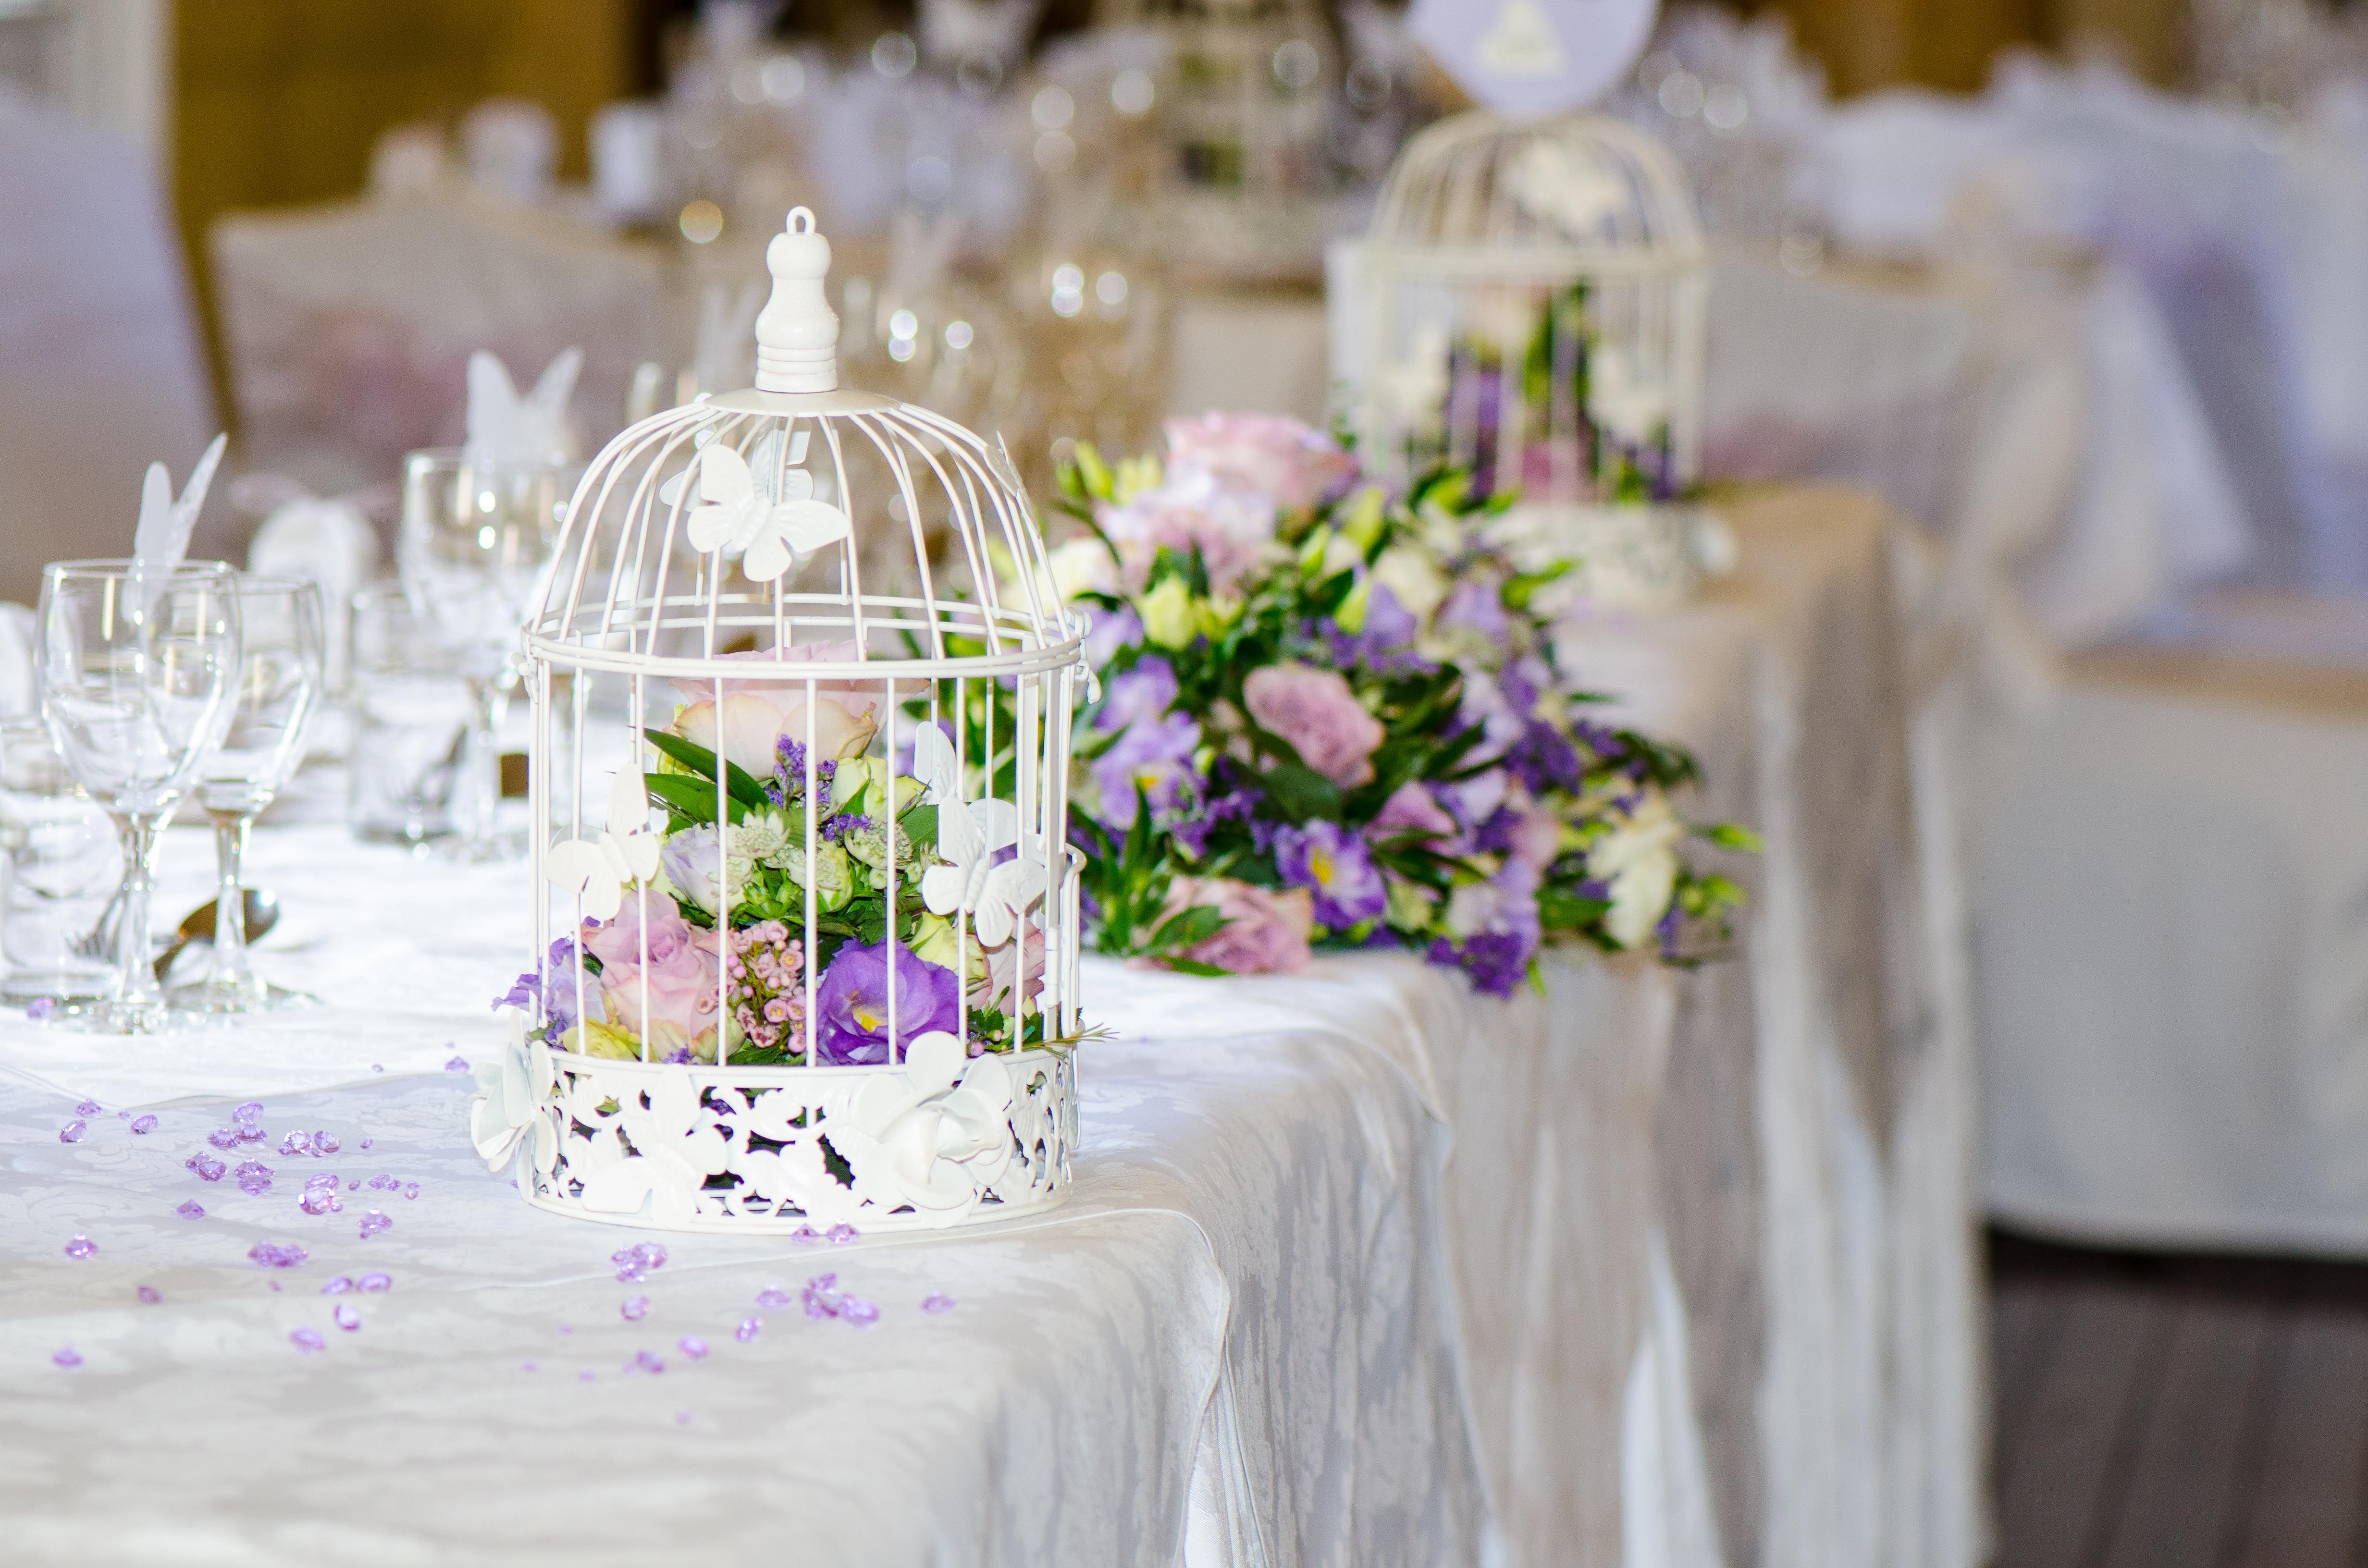 Modern Elegant Wedding Table Decorations With Elegant Table Decorations For  Weddings On Decorations With Surprising Image 18 of 18